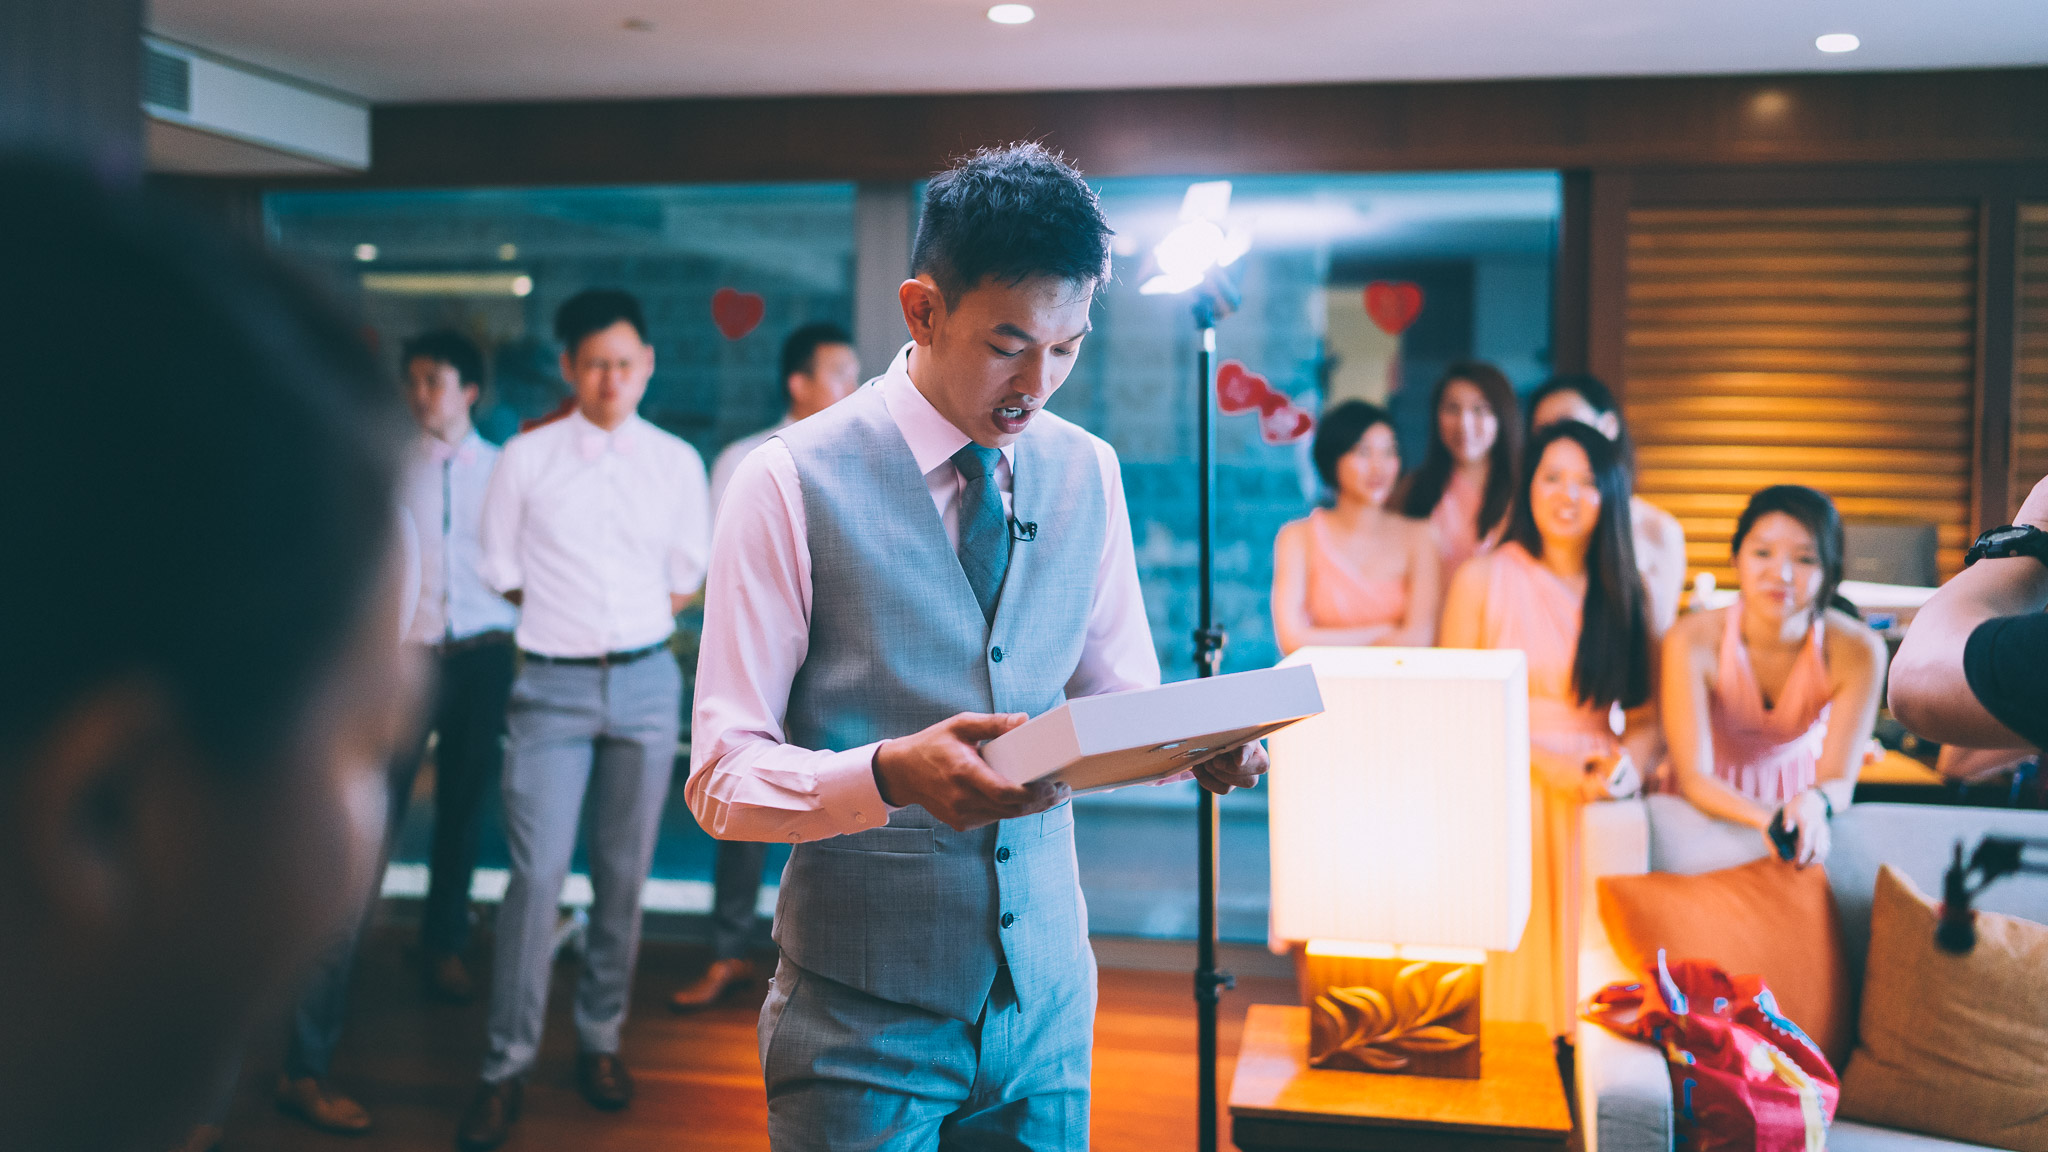 Singapore Wedding Photographer shangrila hotel  Aaron & Sherlyn 64.jpg